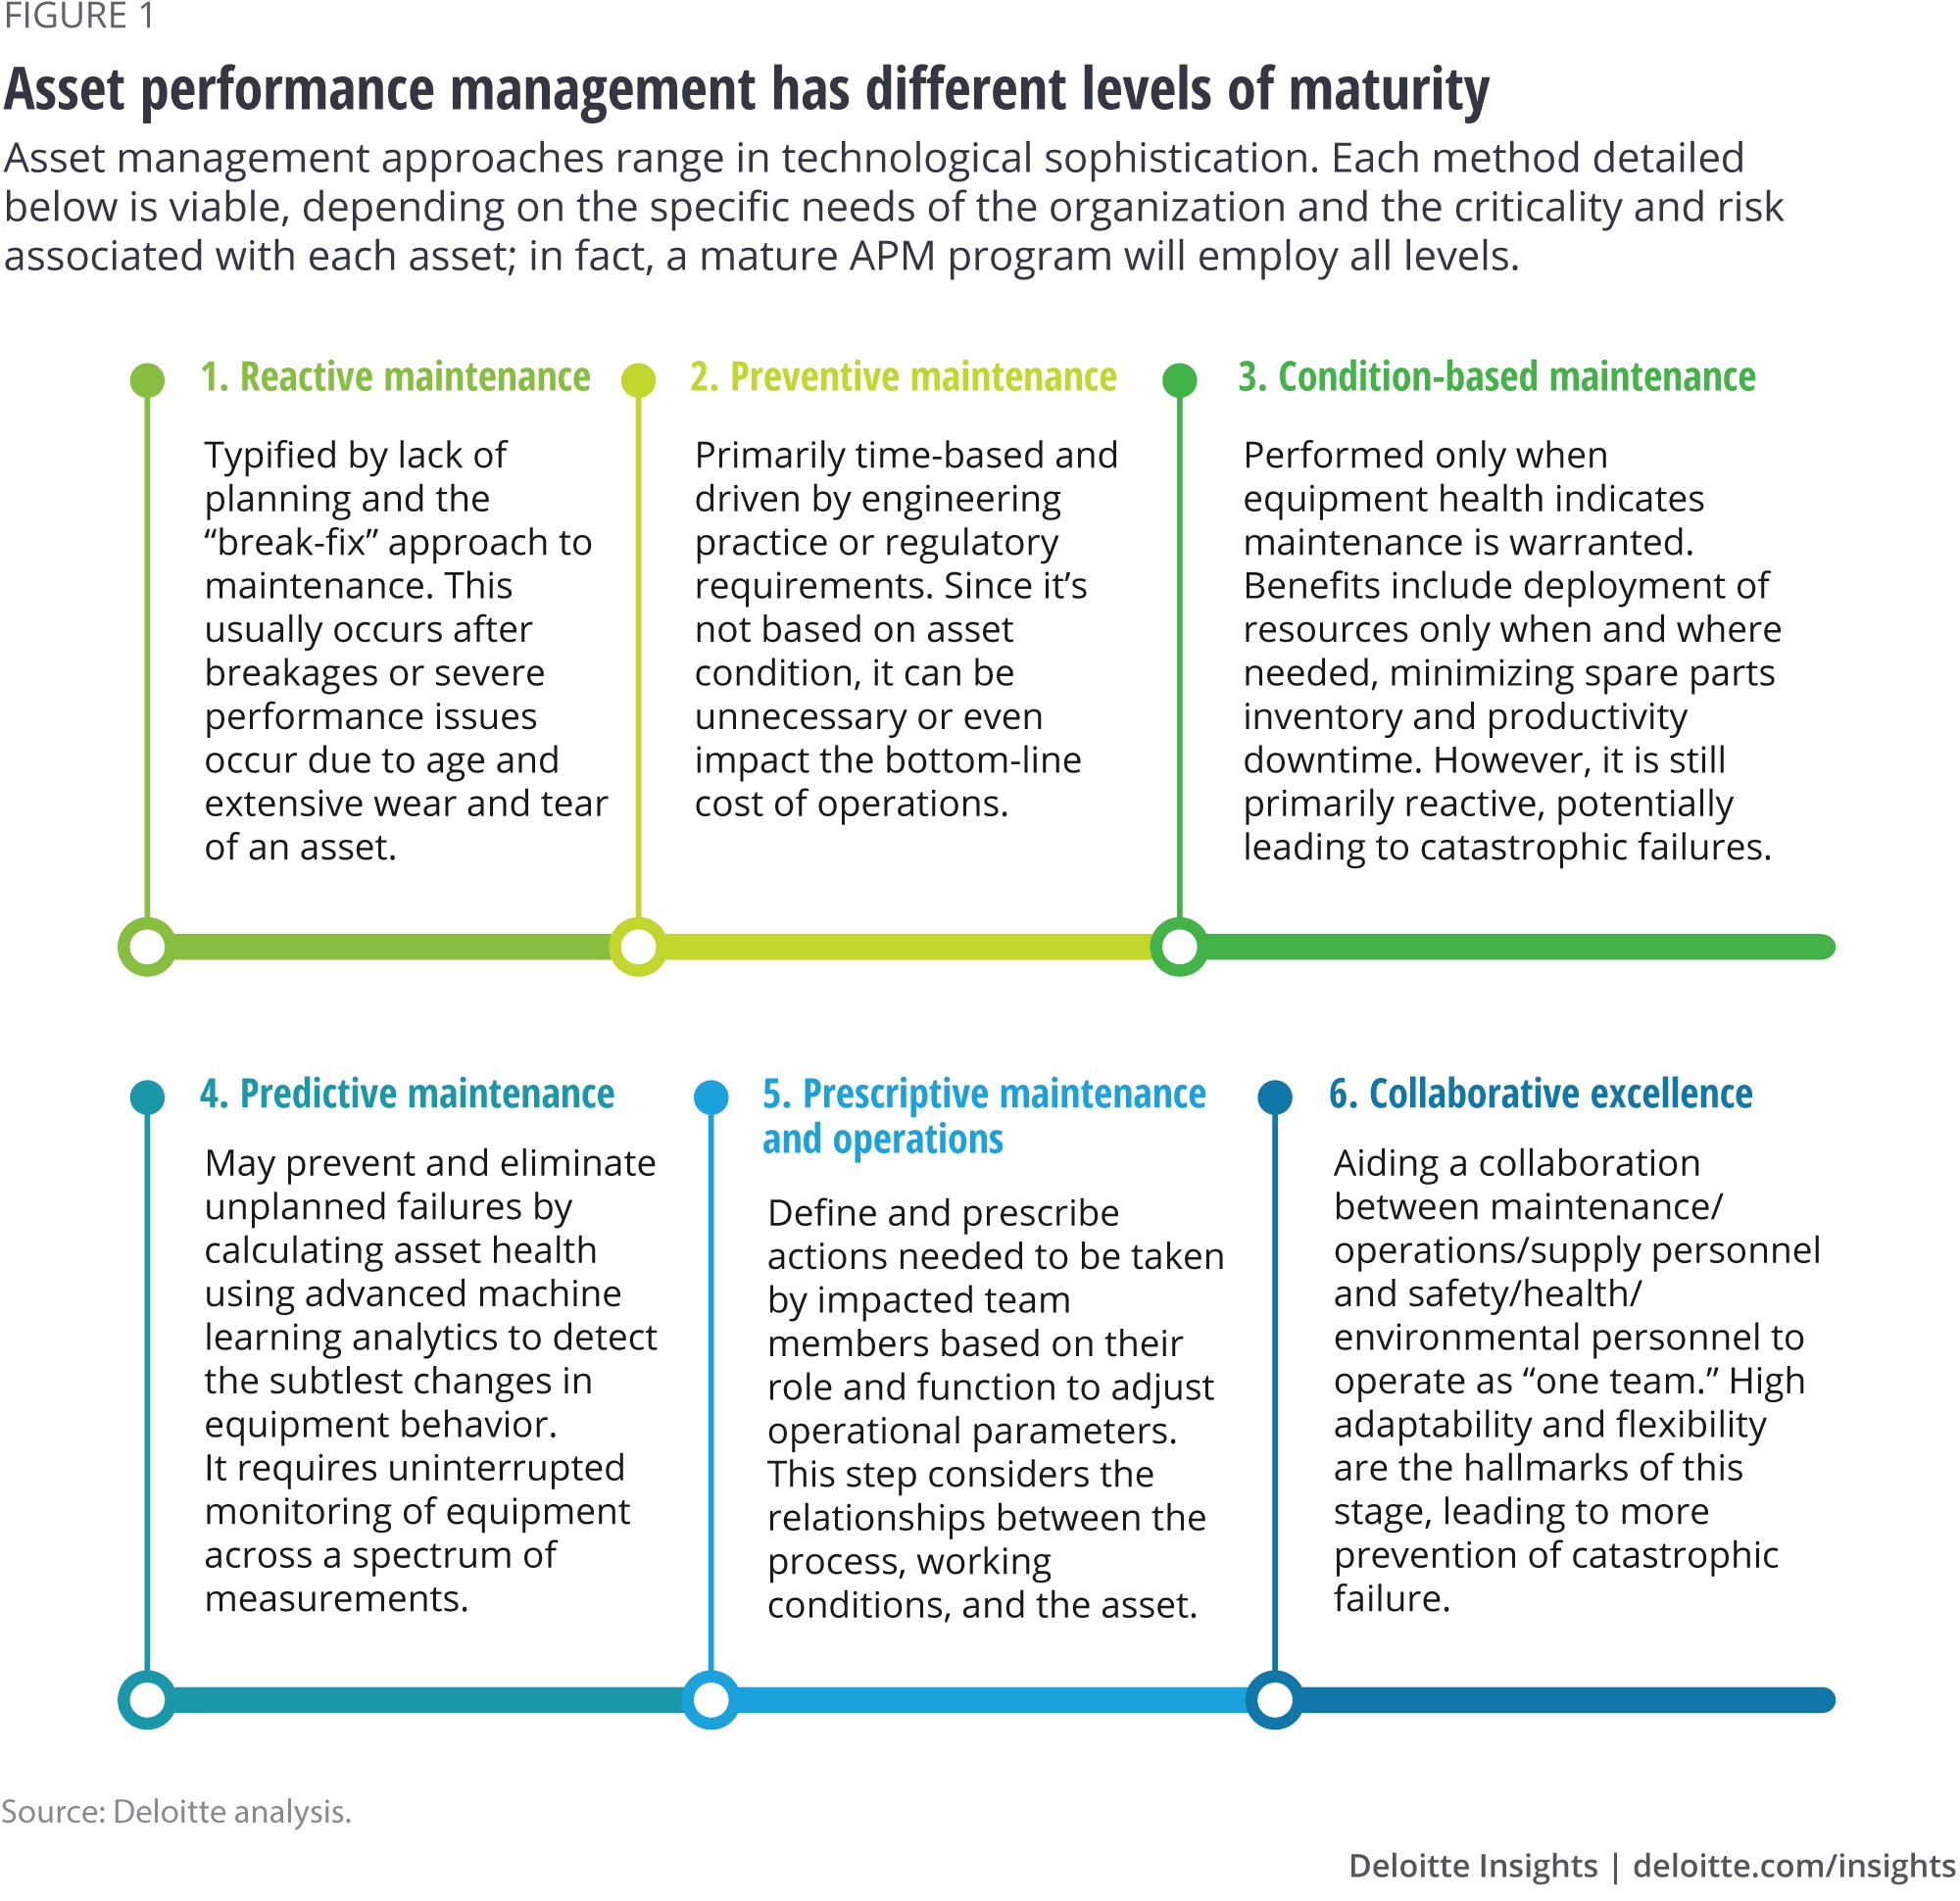 Asset performance management has different levels of maturity